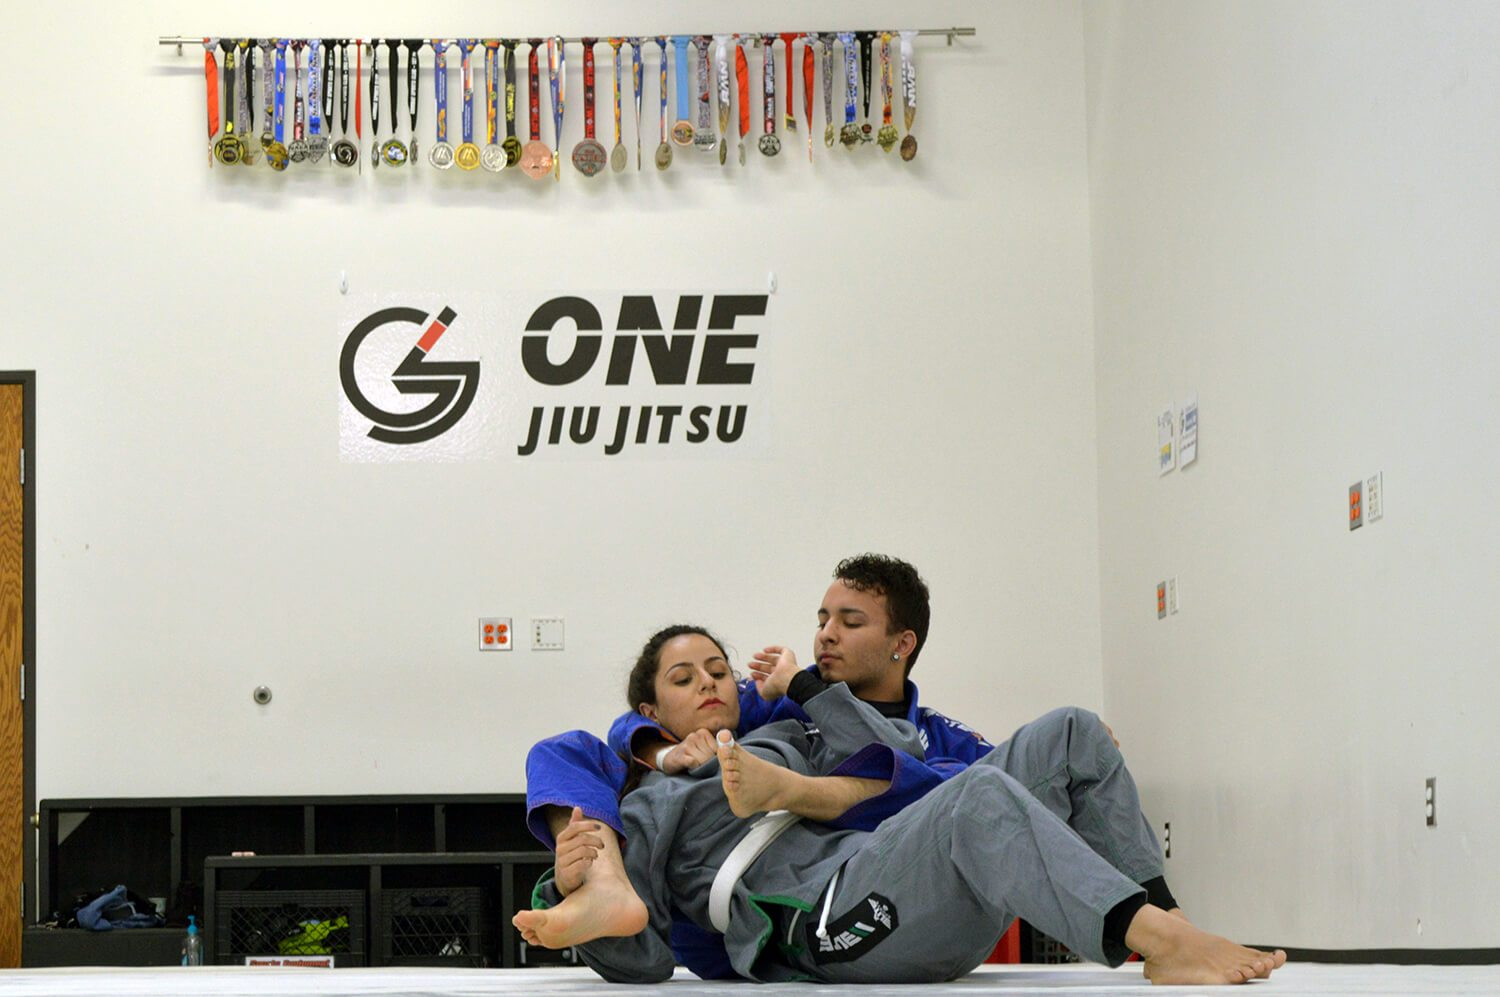 Elite-sports-Team-Elite-NO GI-Andria-Torrez-image13.jpeg